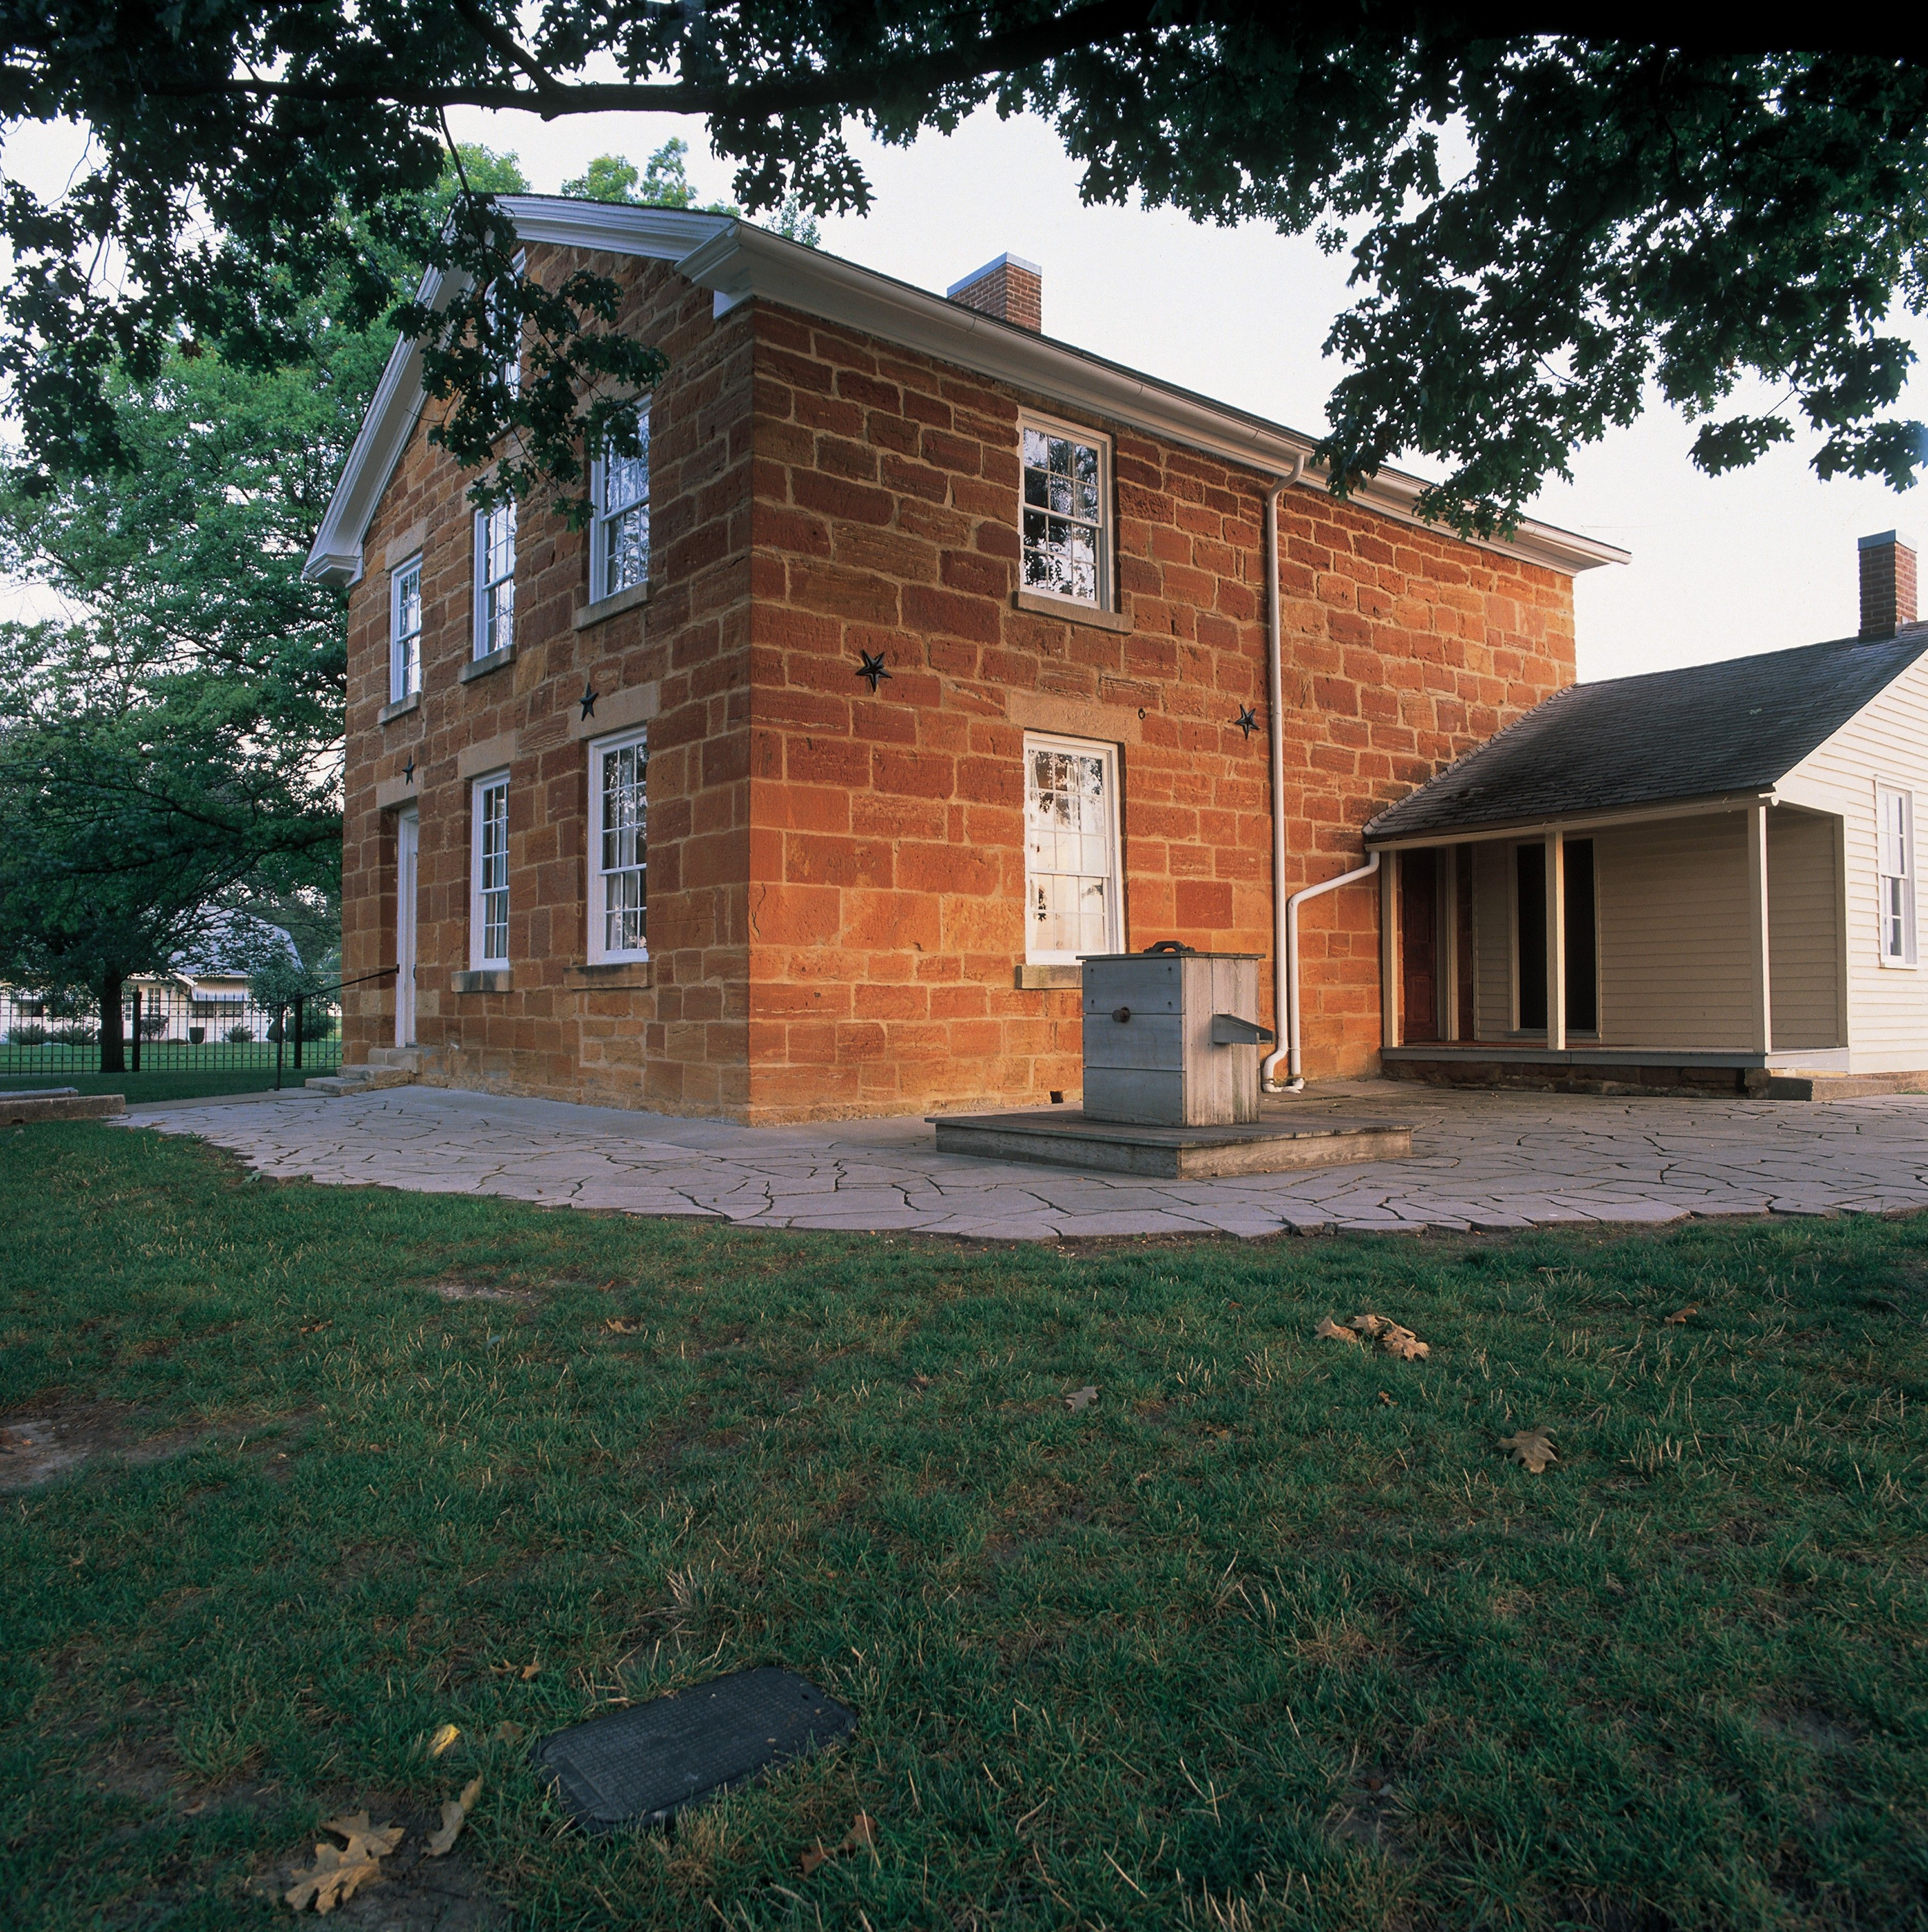 A view of Carthage Jail in Carthage, Illinois.